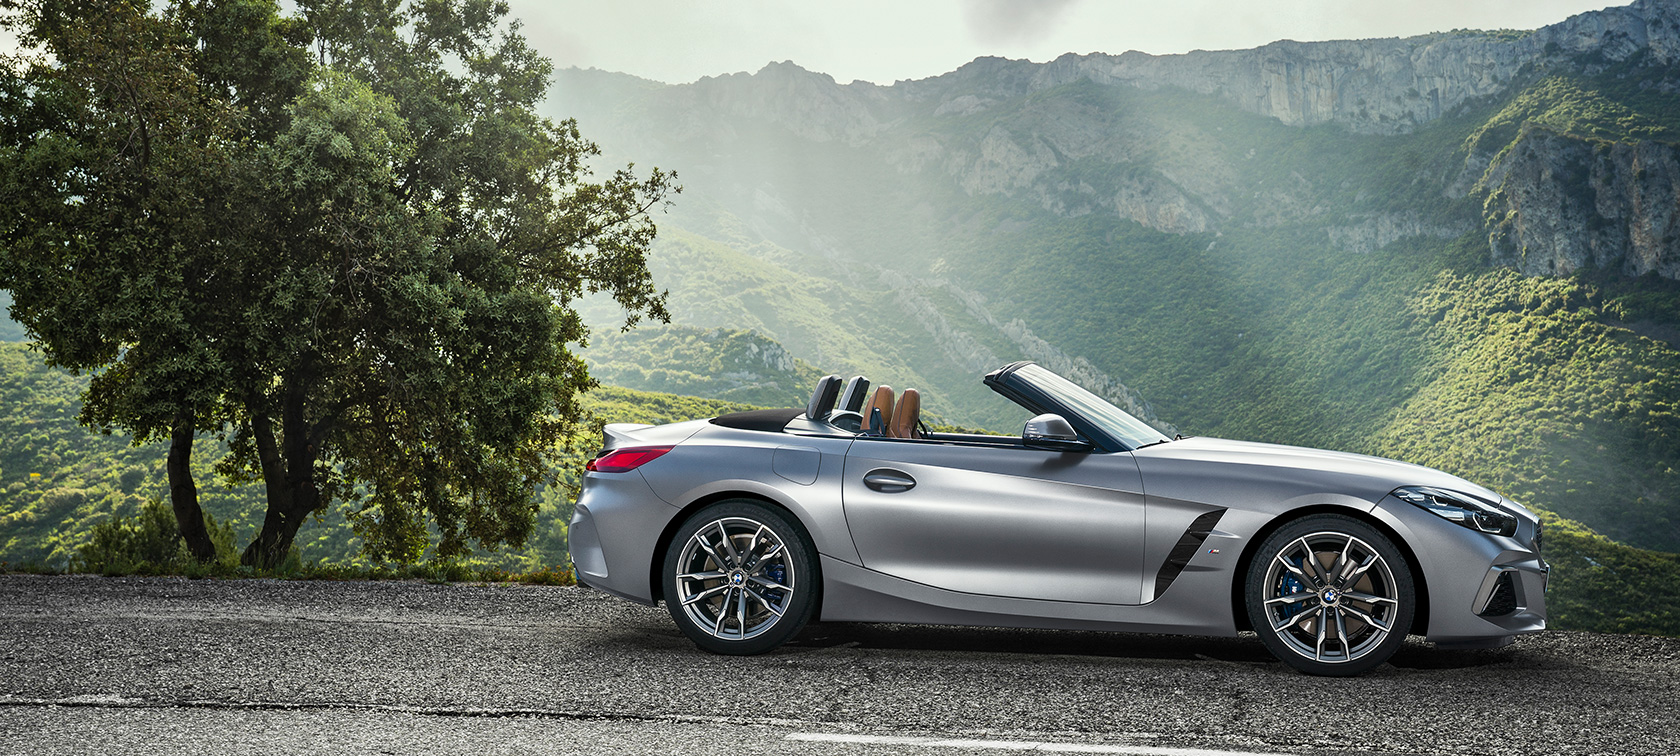 BMW Z4 M40i 2019 Descapotable BMW Individual Frozen Grey metalizado, aparcado, vista lateral